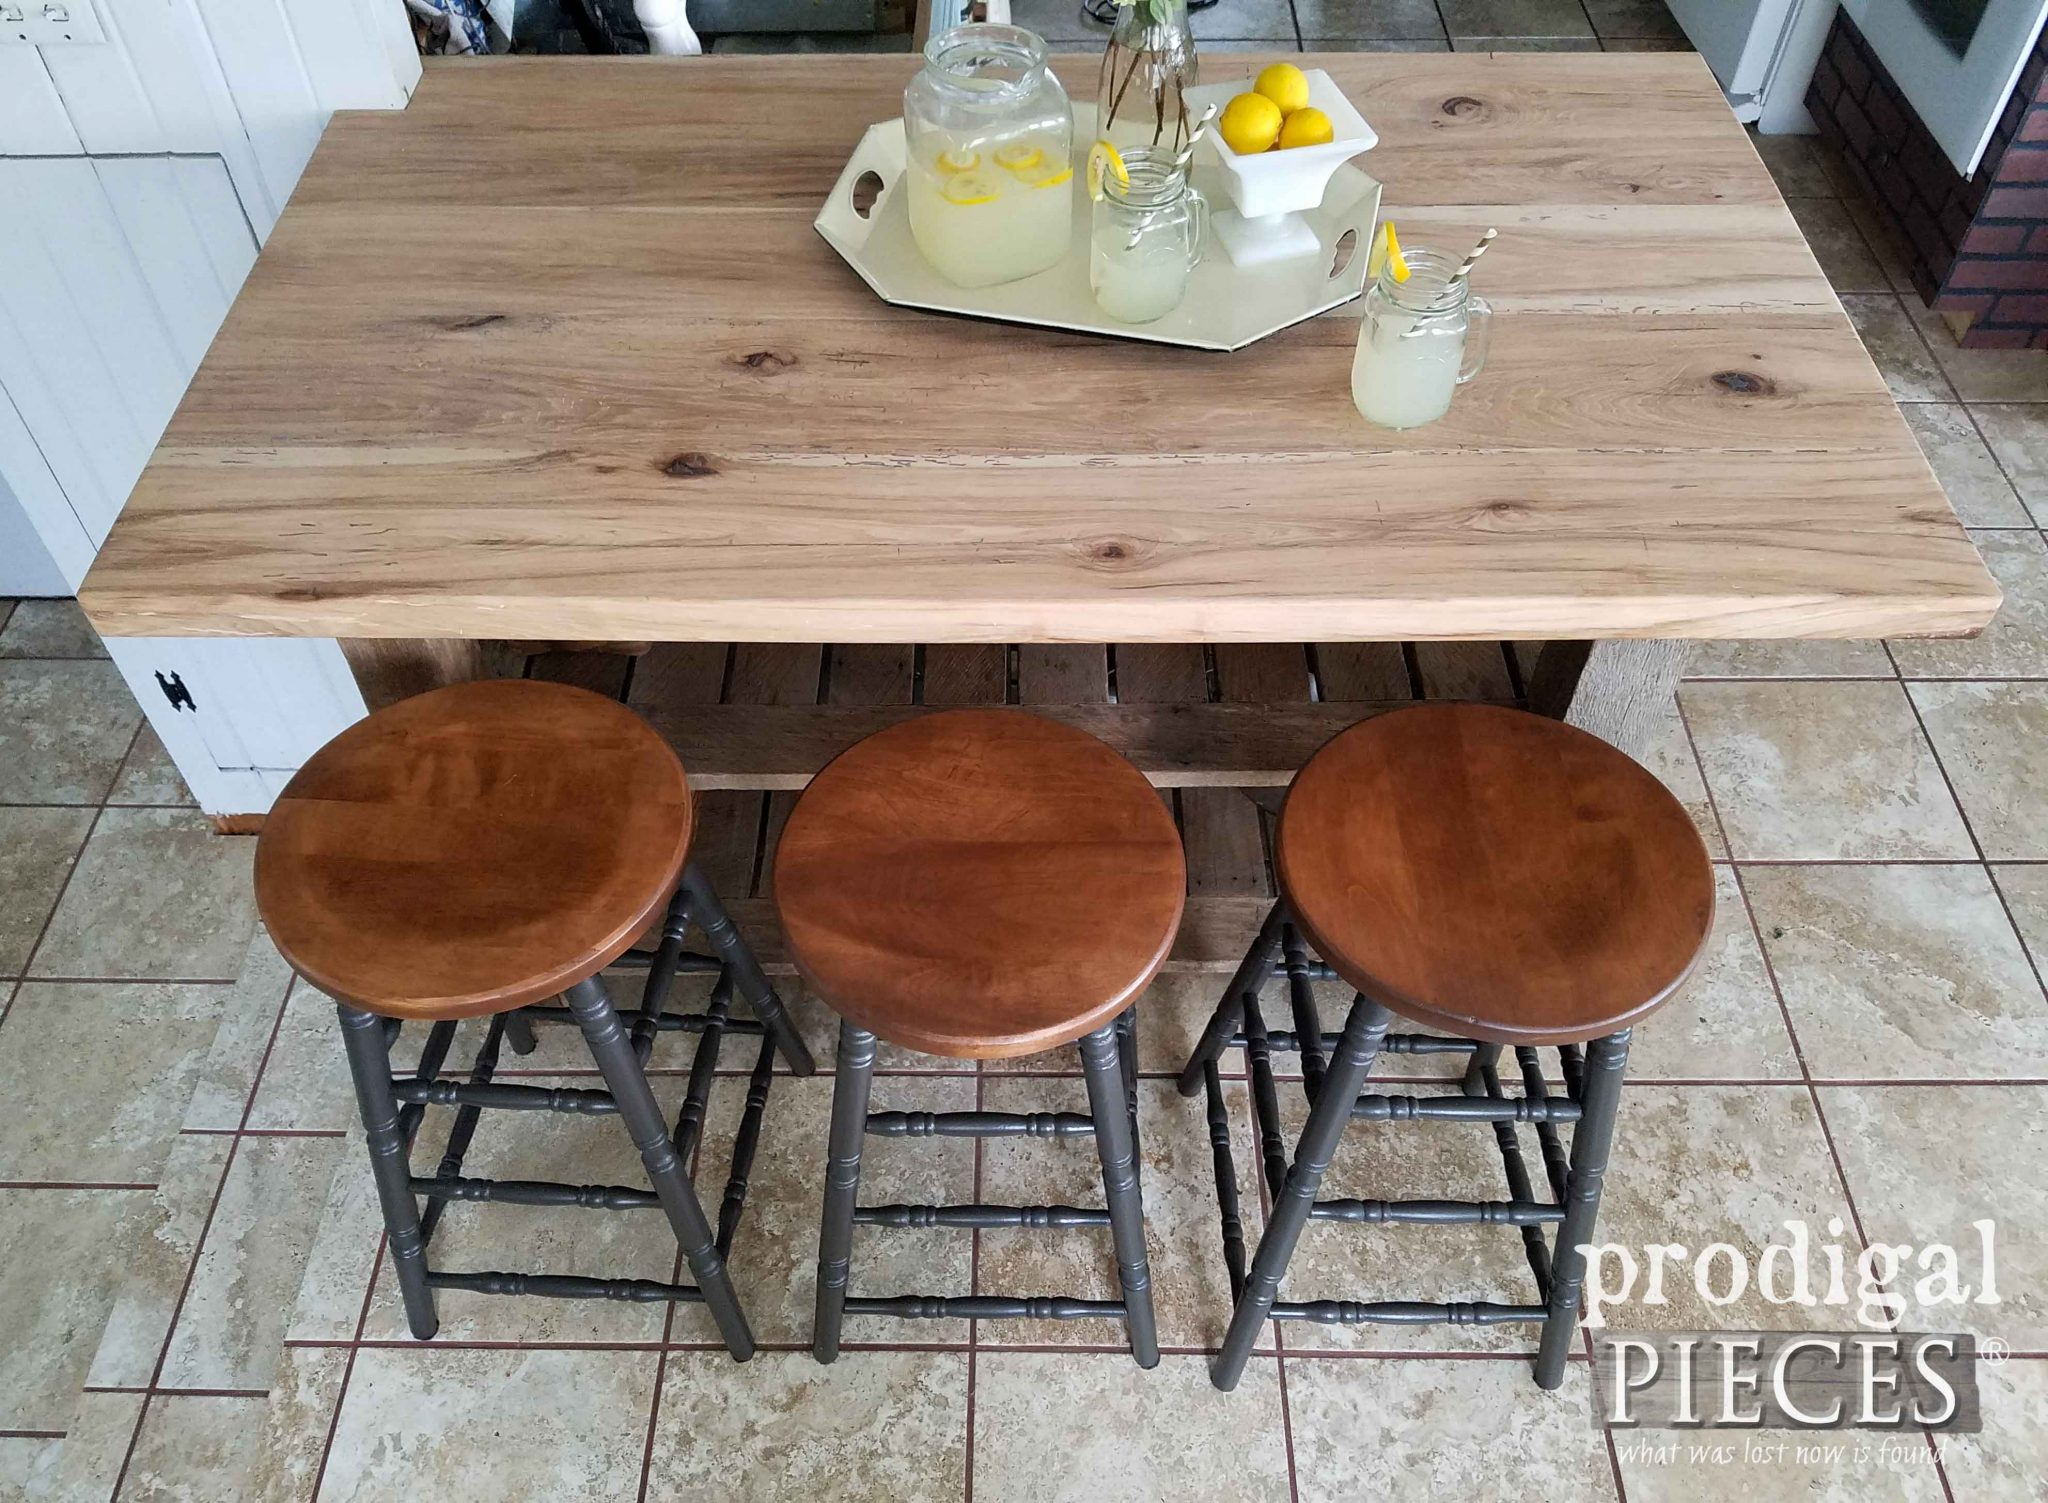 Reclaimed Hickory Wood Countertops by Prodigal Pieces | prodigalpieces.com